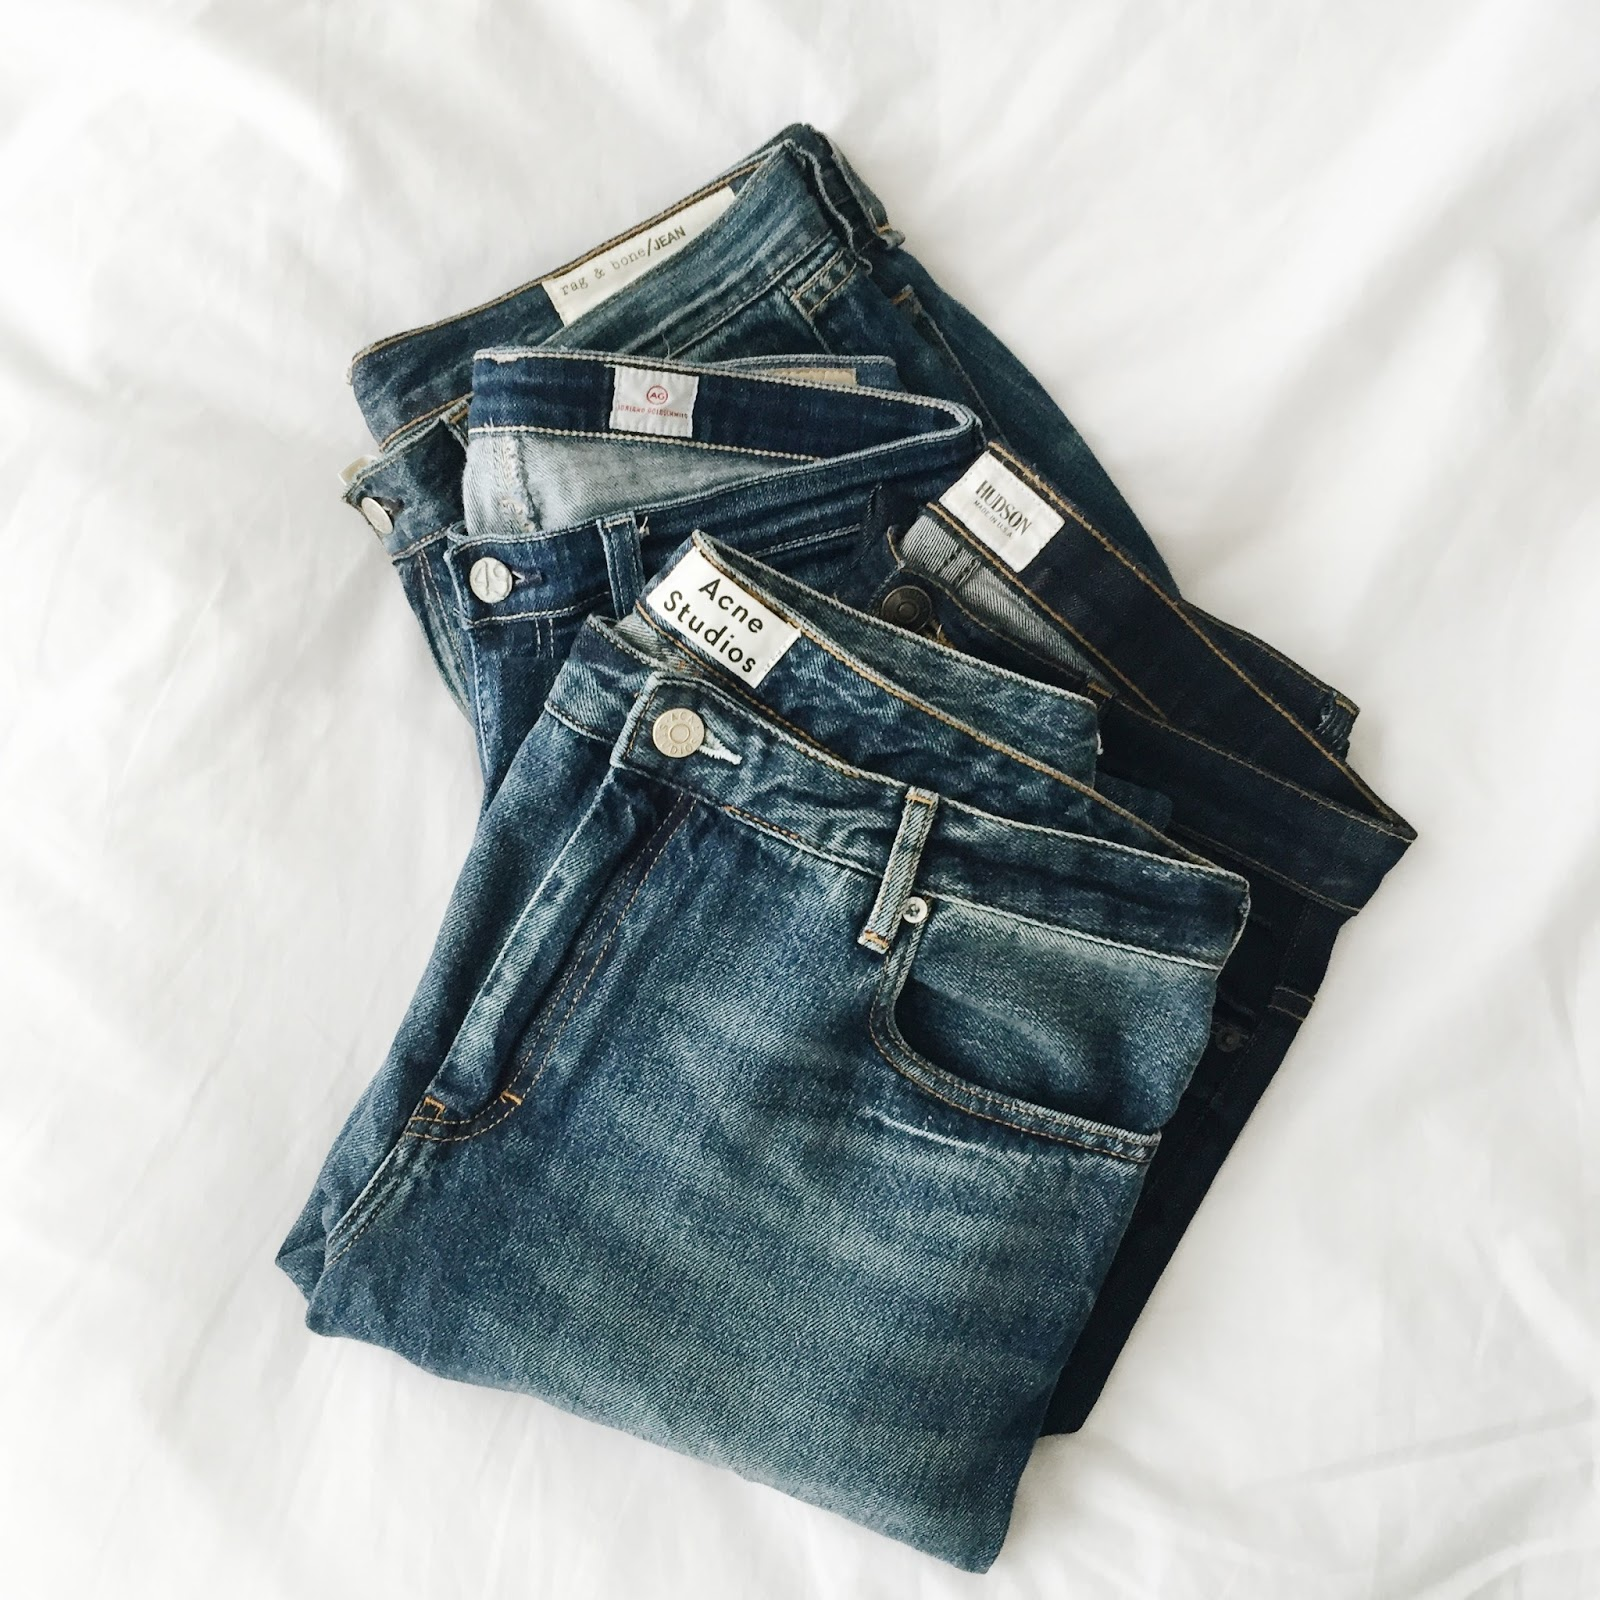 469e6a28a Buy these jeans on my Depop! I have a confession to make. I've finally come  to terms with a truth that I've ignored for years: I am a hoarder.